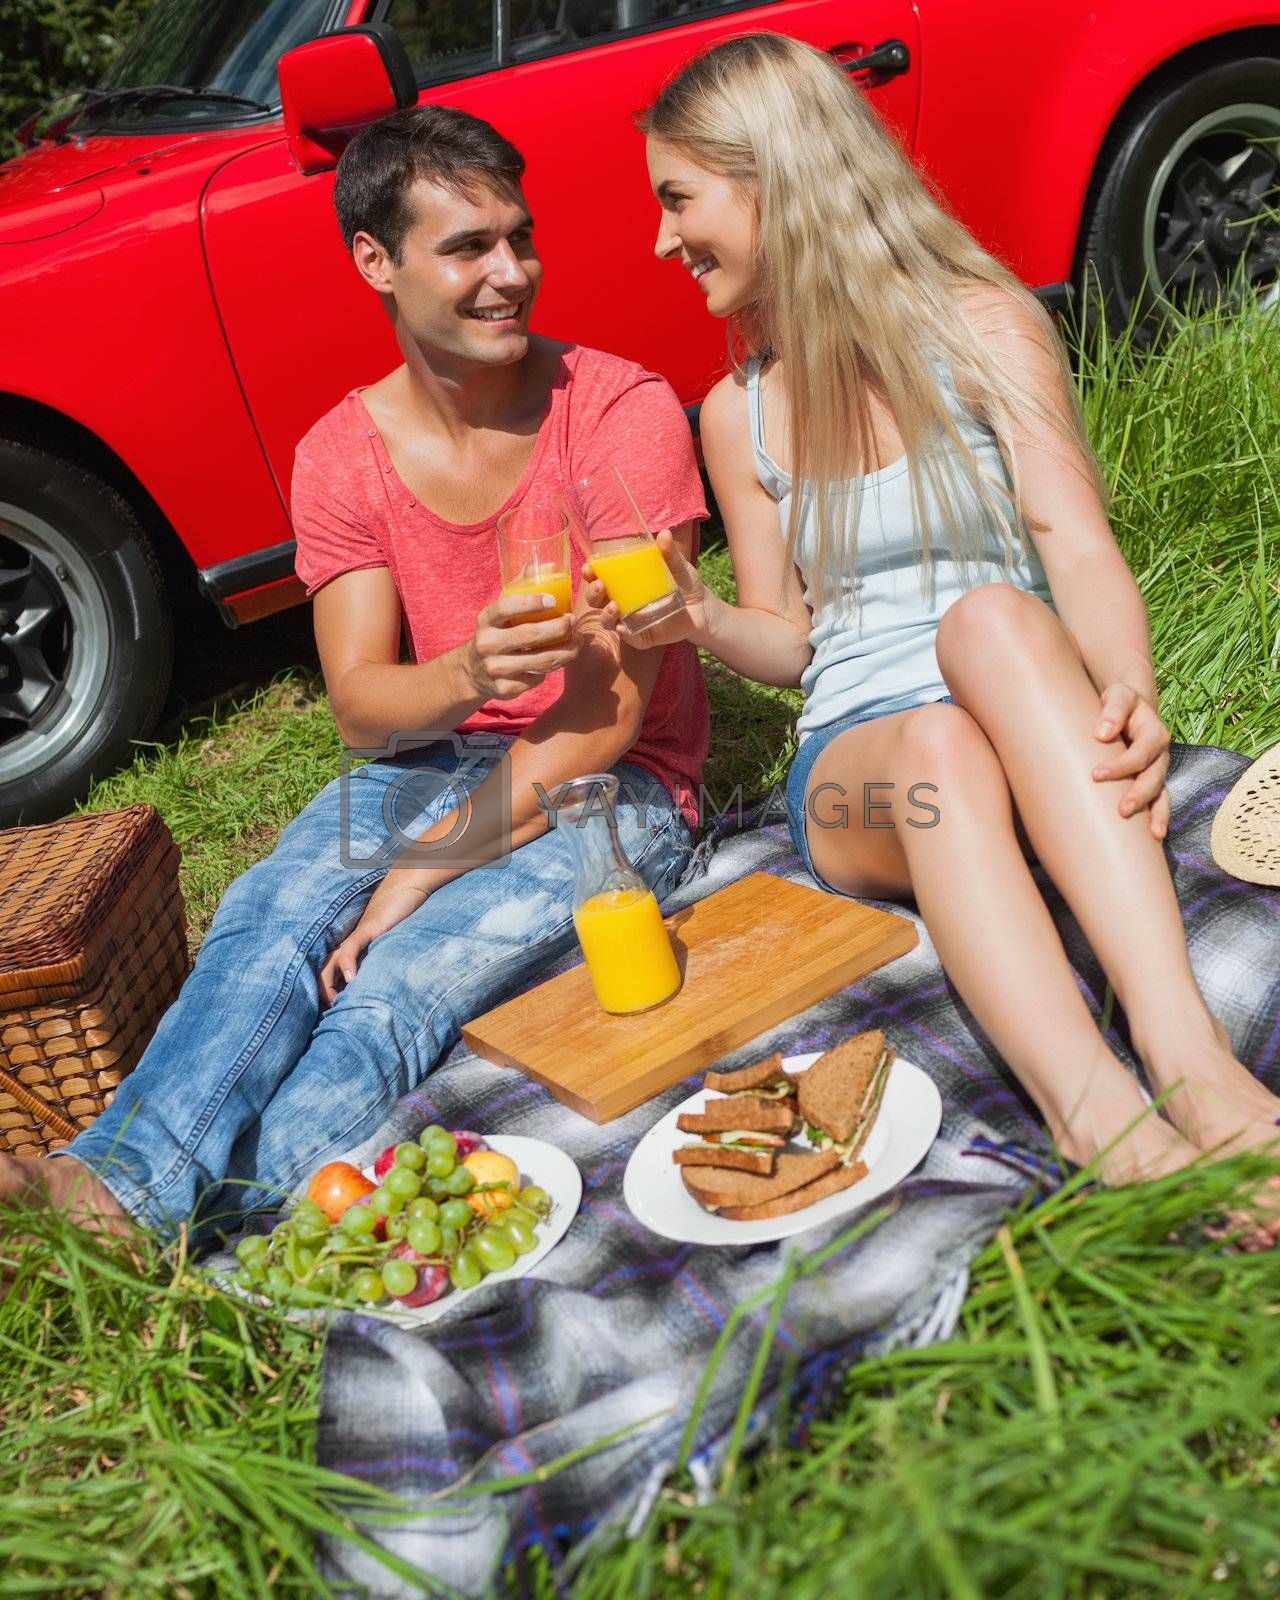 Cheerful couple sitting having picnic together by Wavebreakmedia